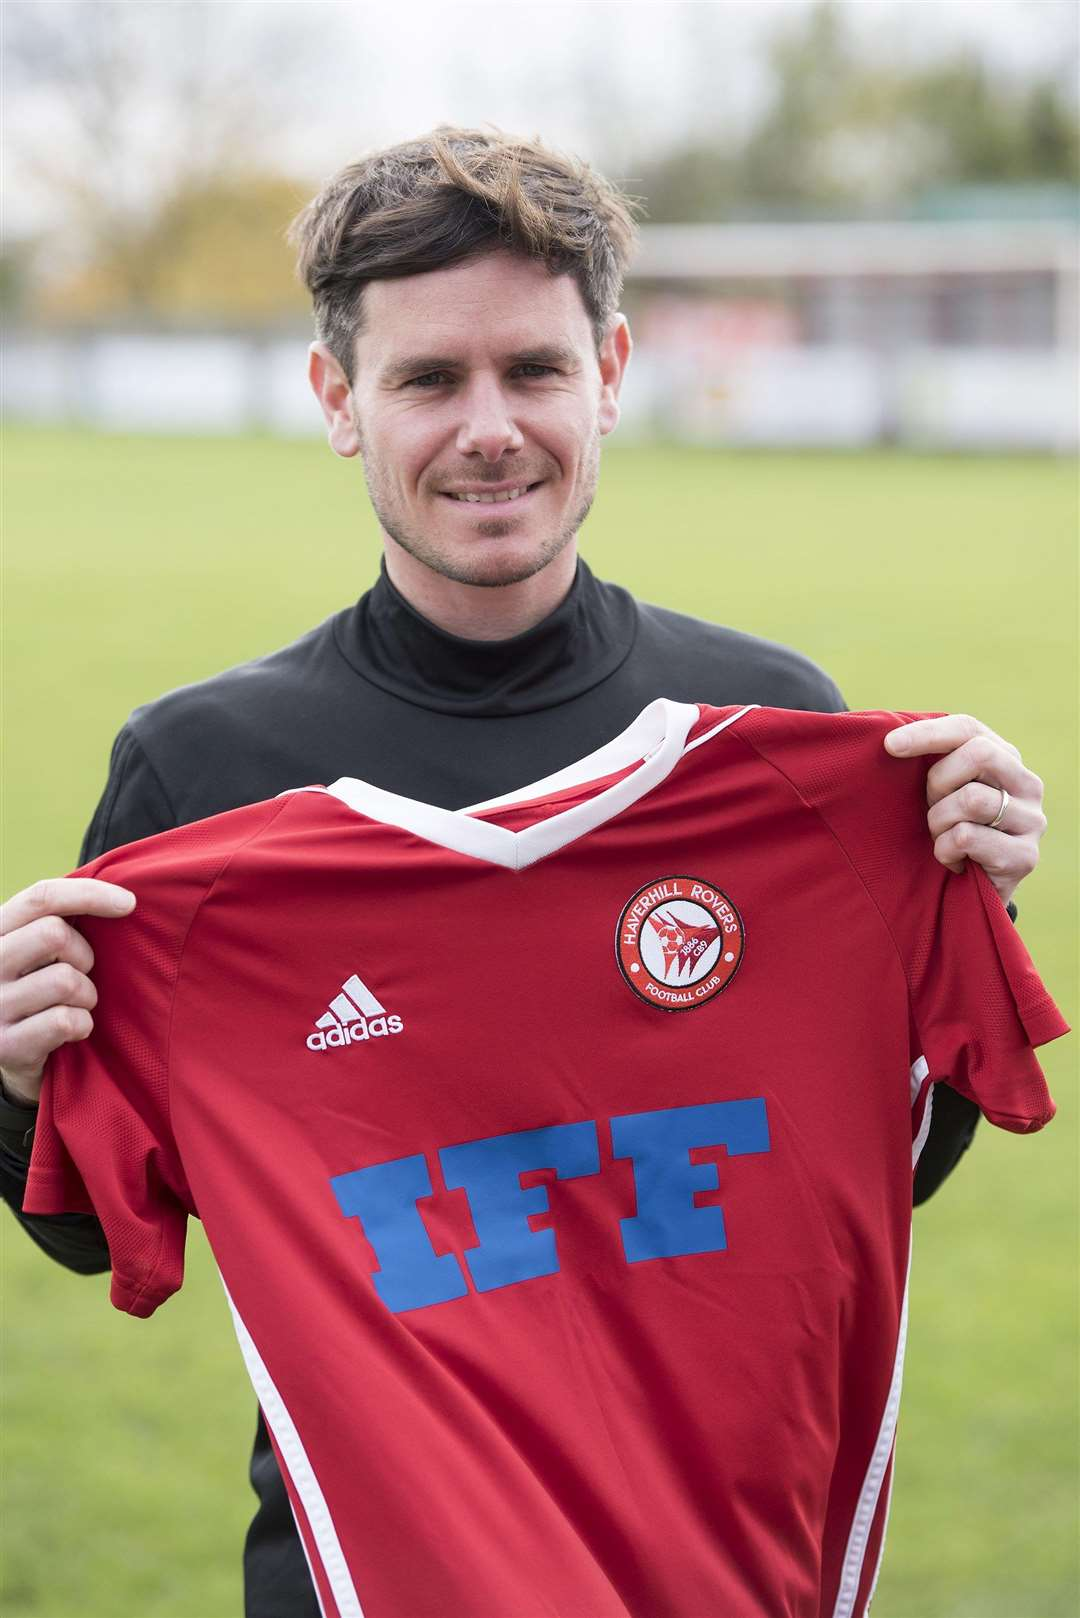 THE REDS: Haverhill Rovers manager Marc Abbott (Picture: Mark Westley)